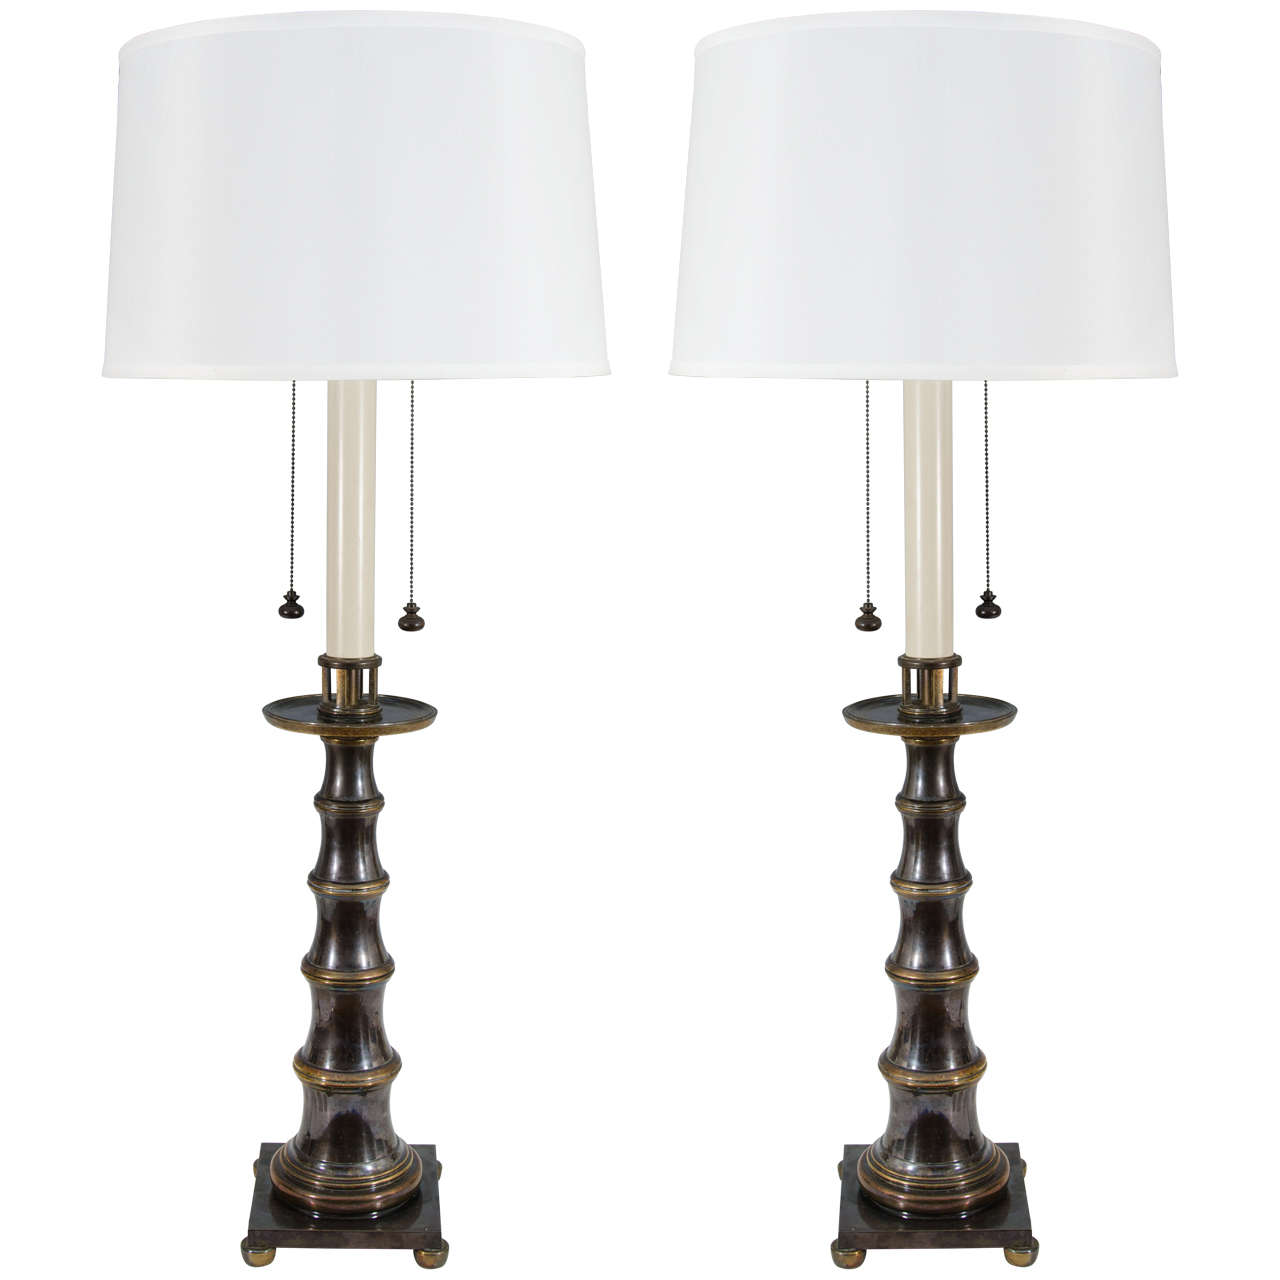 Mid-Century Pair of Faux Bamboo Table Lamps by Stiffel